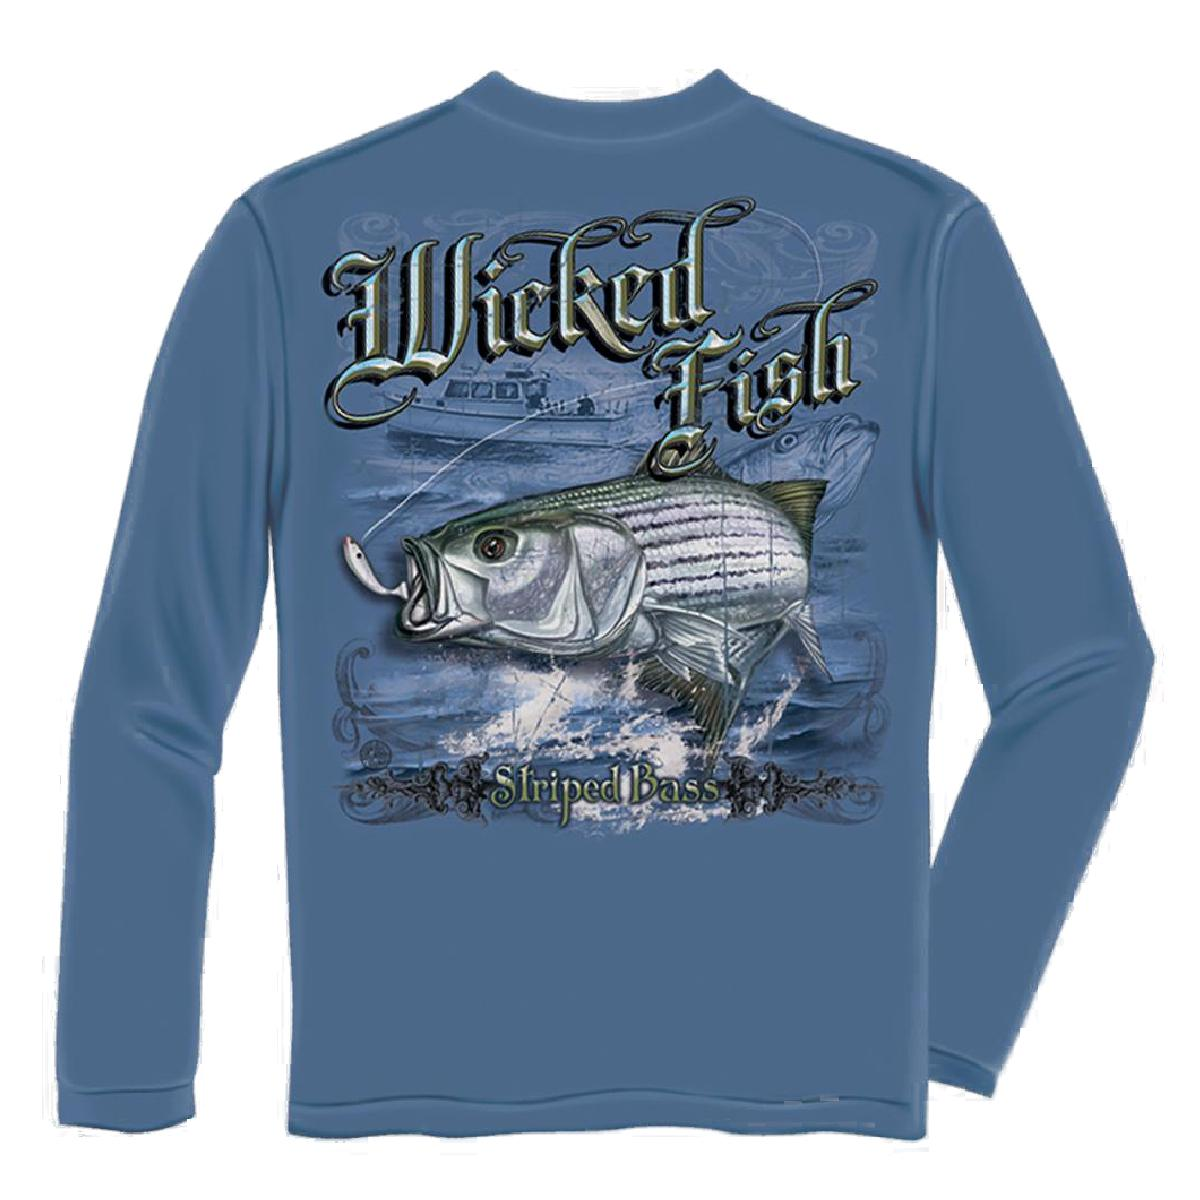 Wicked Fish Striped Bass Long Sleeve Fishing T-shirt by Erazor Bits, Blue